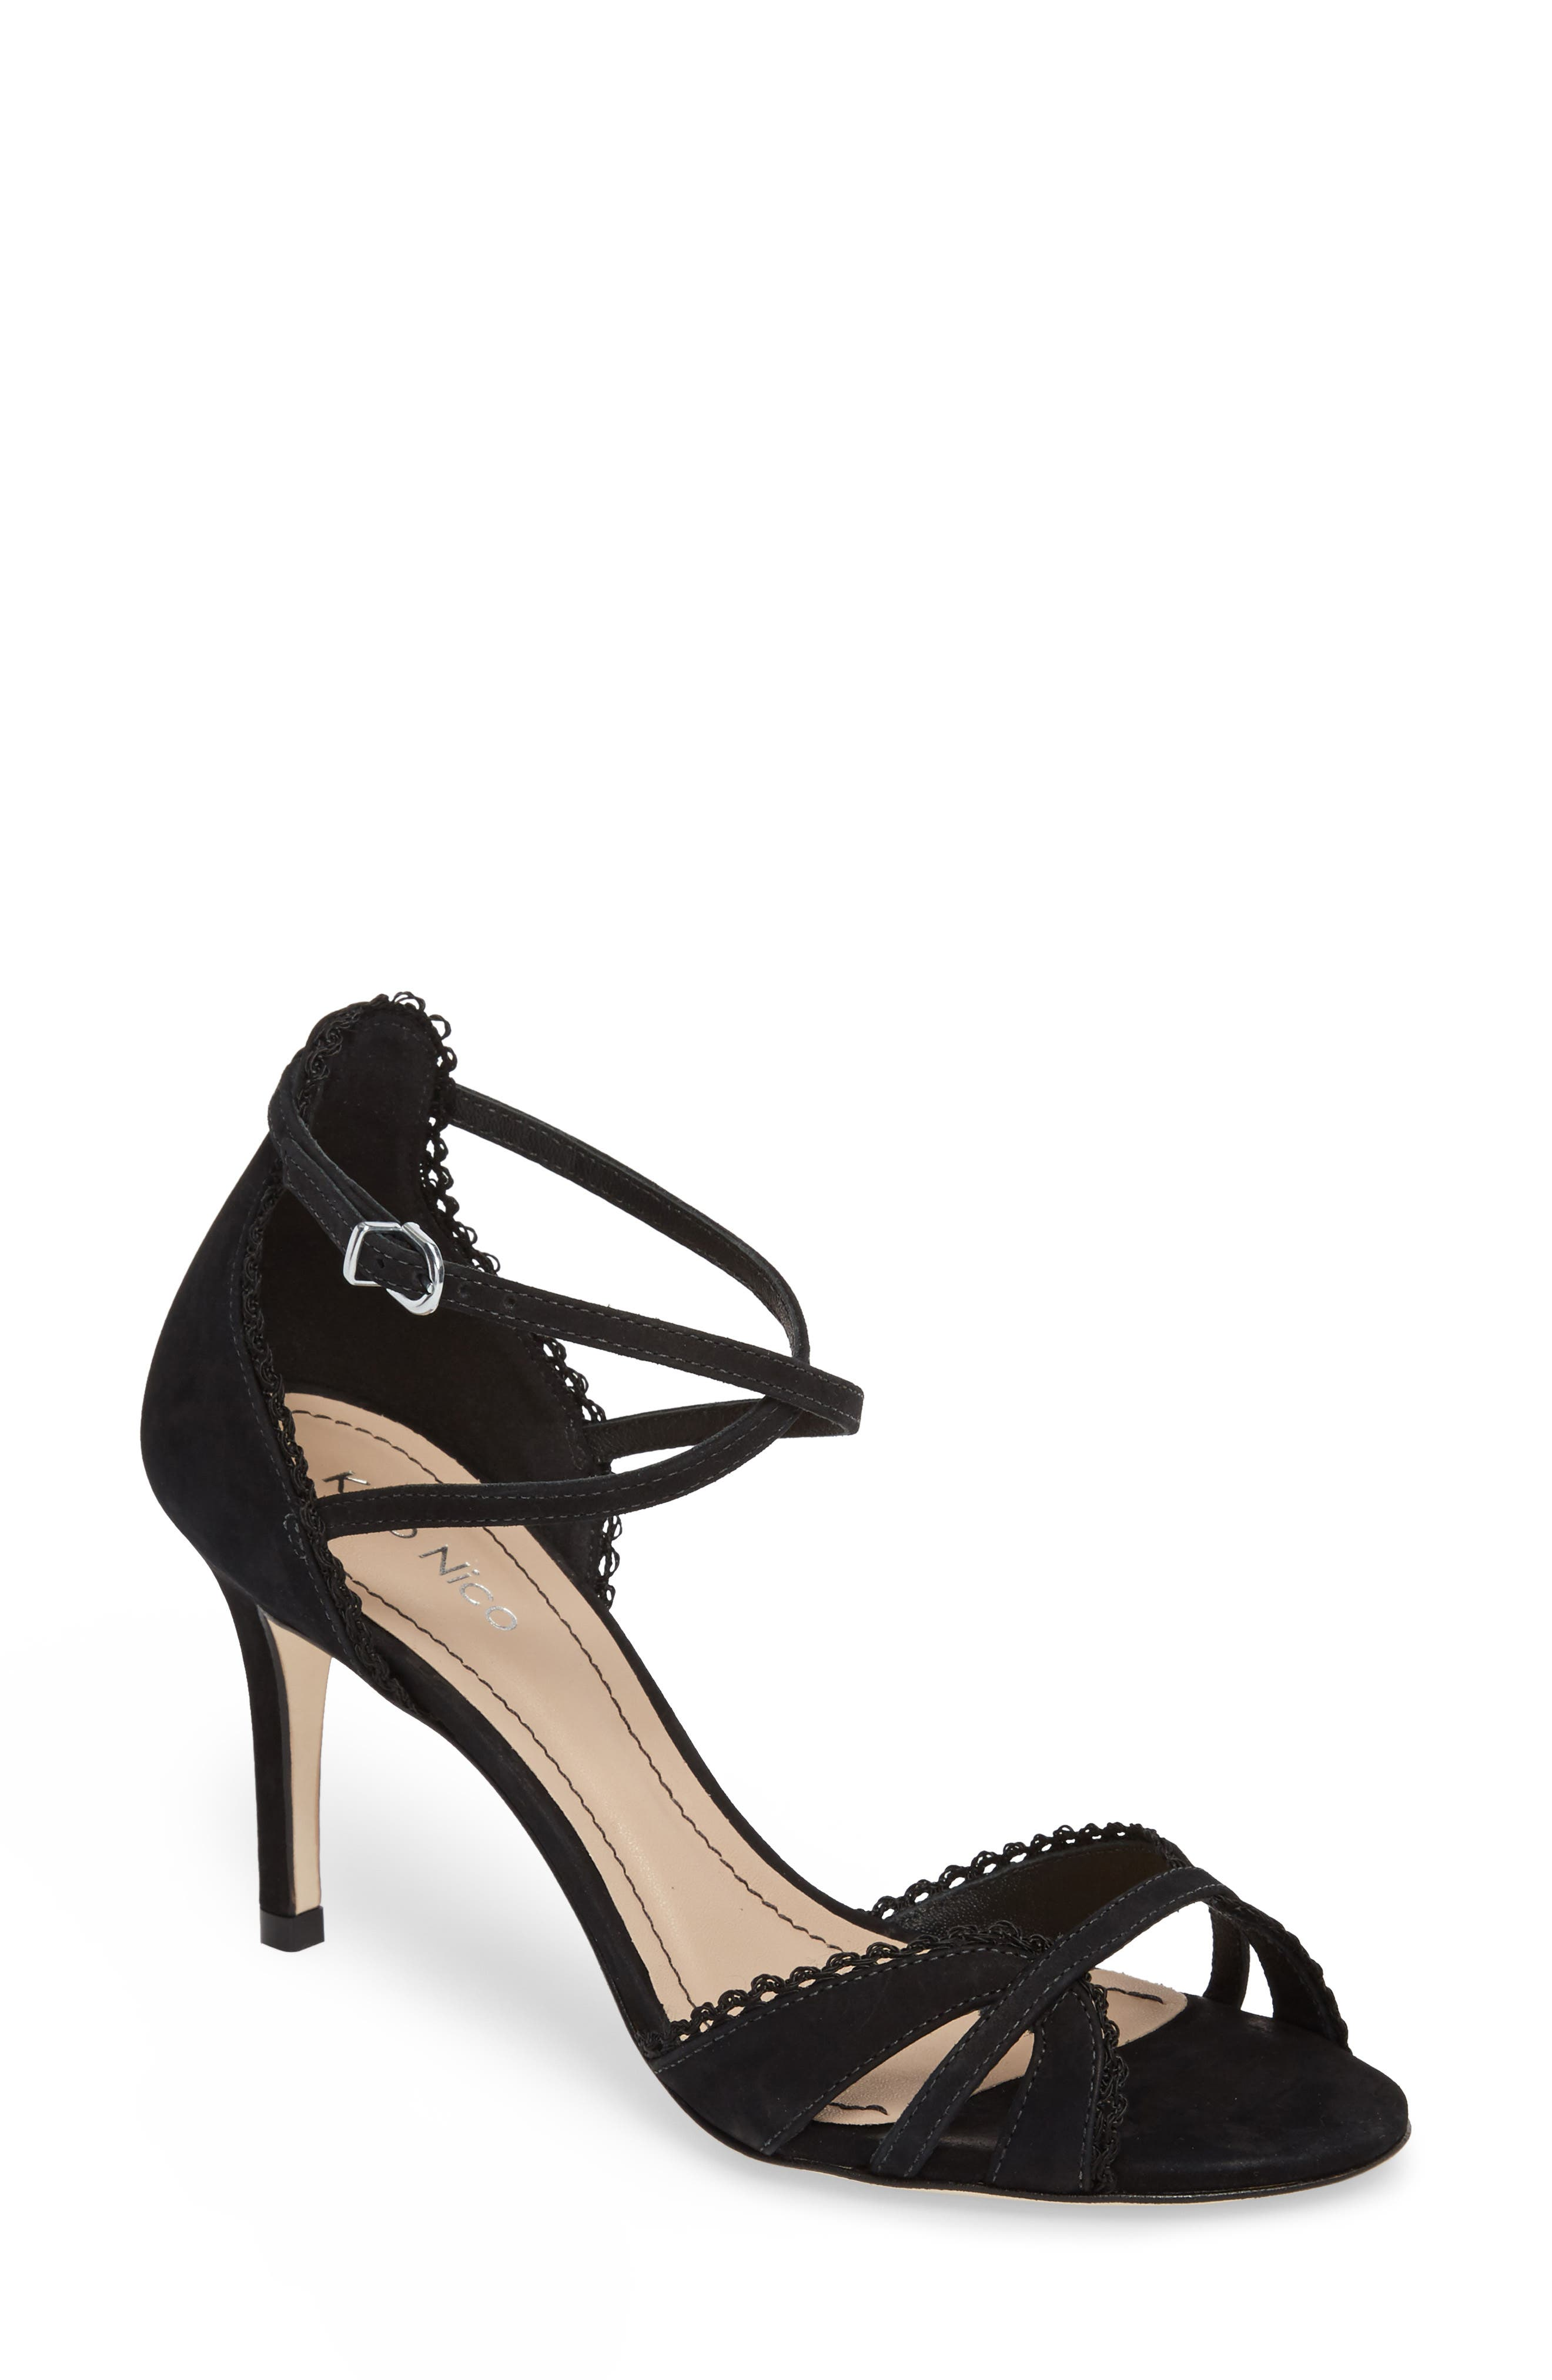 Alternate Image 1 Selected - Klub Nico Angelica Sandal (Women)